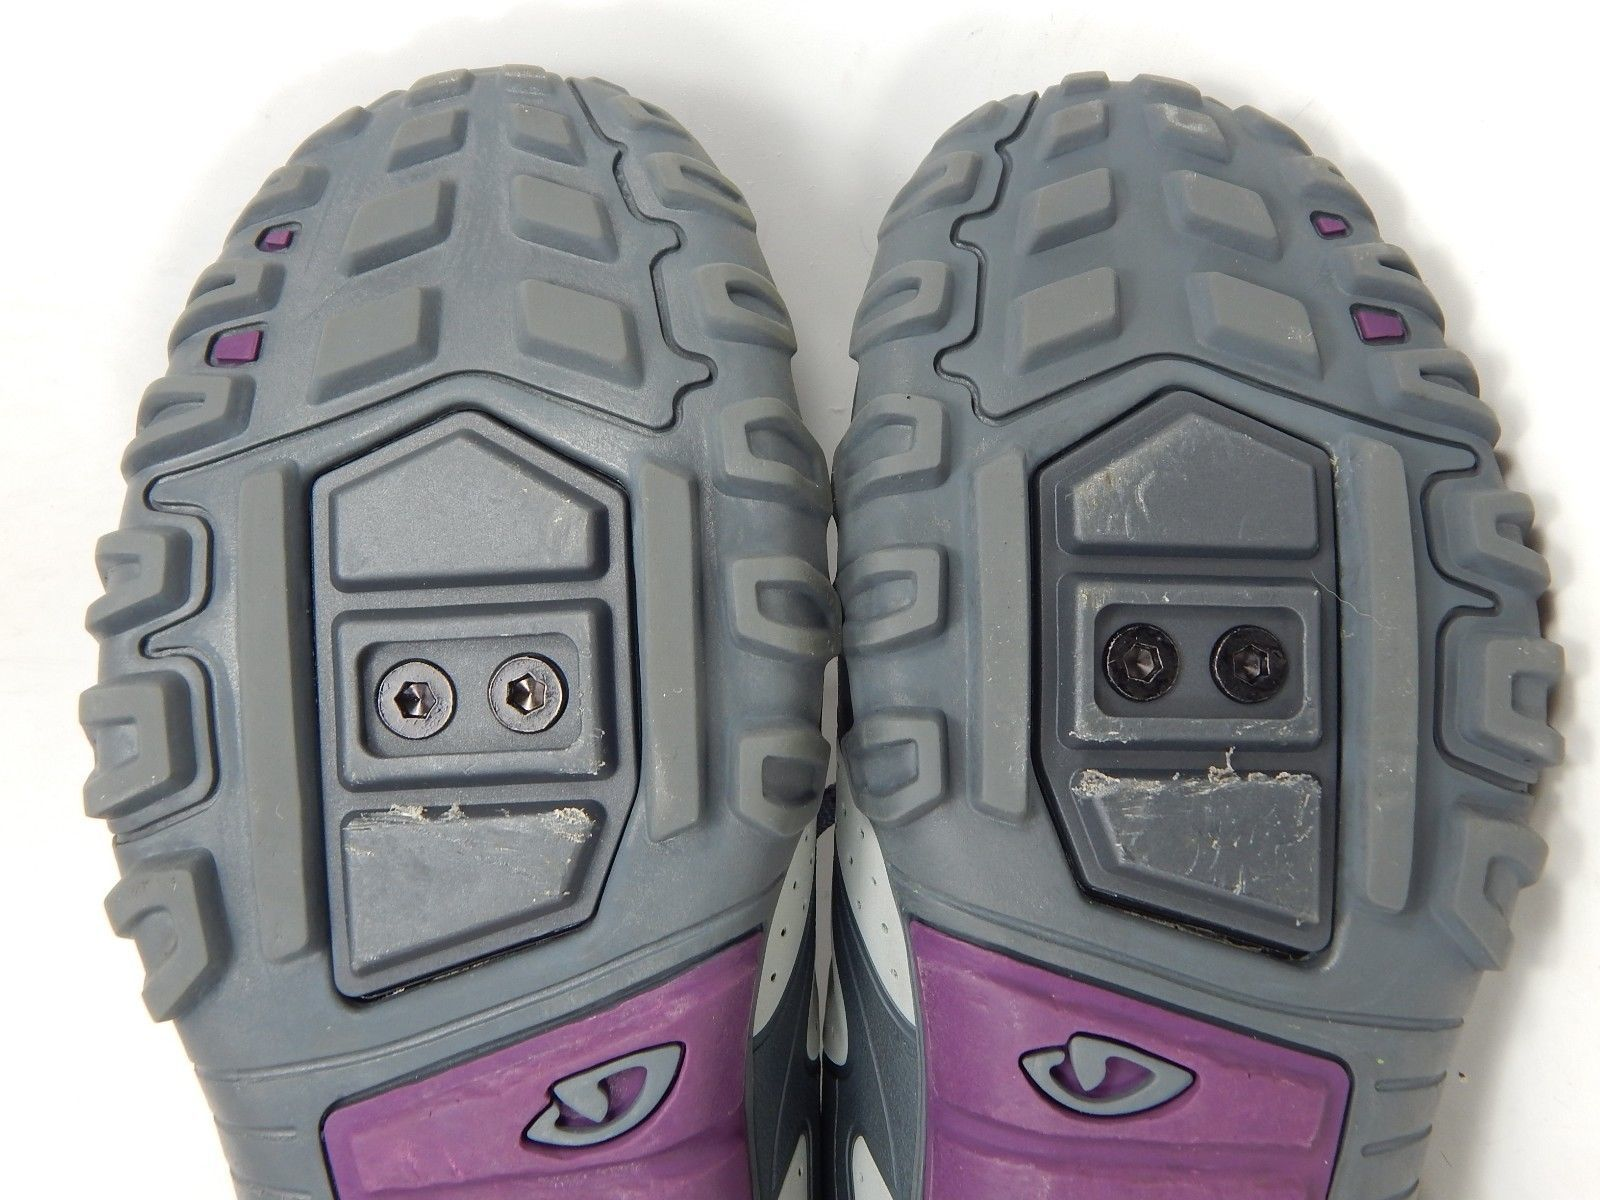 Giro Sage Cycling Shoes Women's Size US 7.5 M (B) EU 39 Gray / Slate